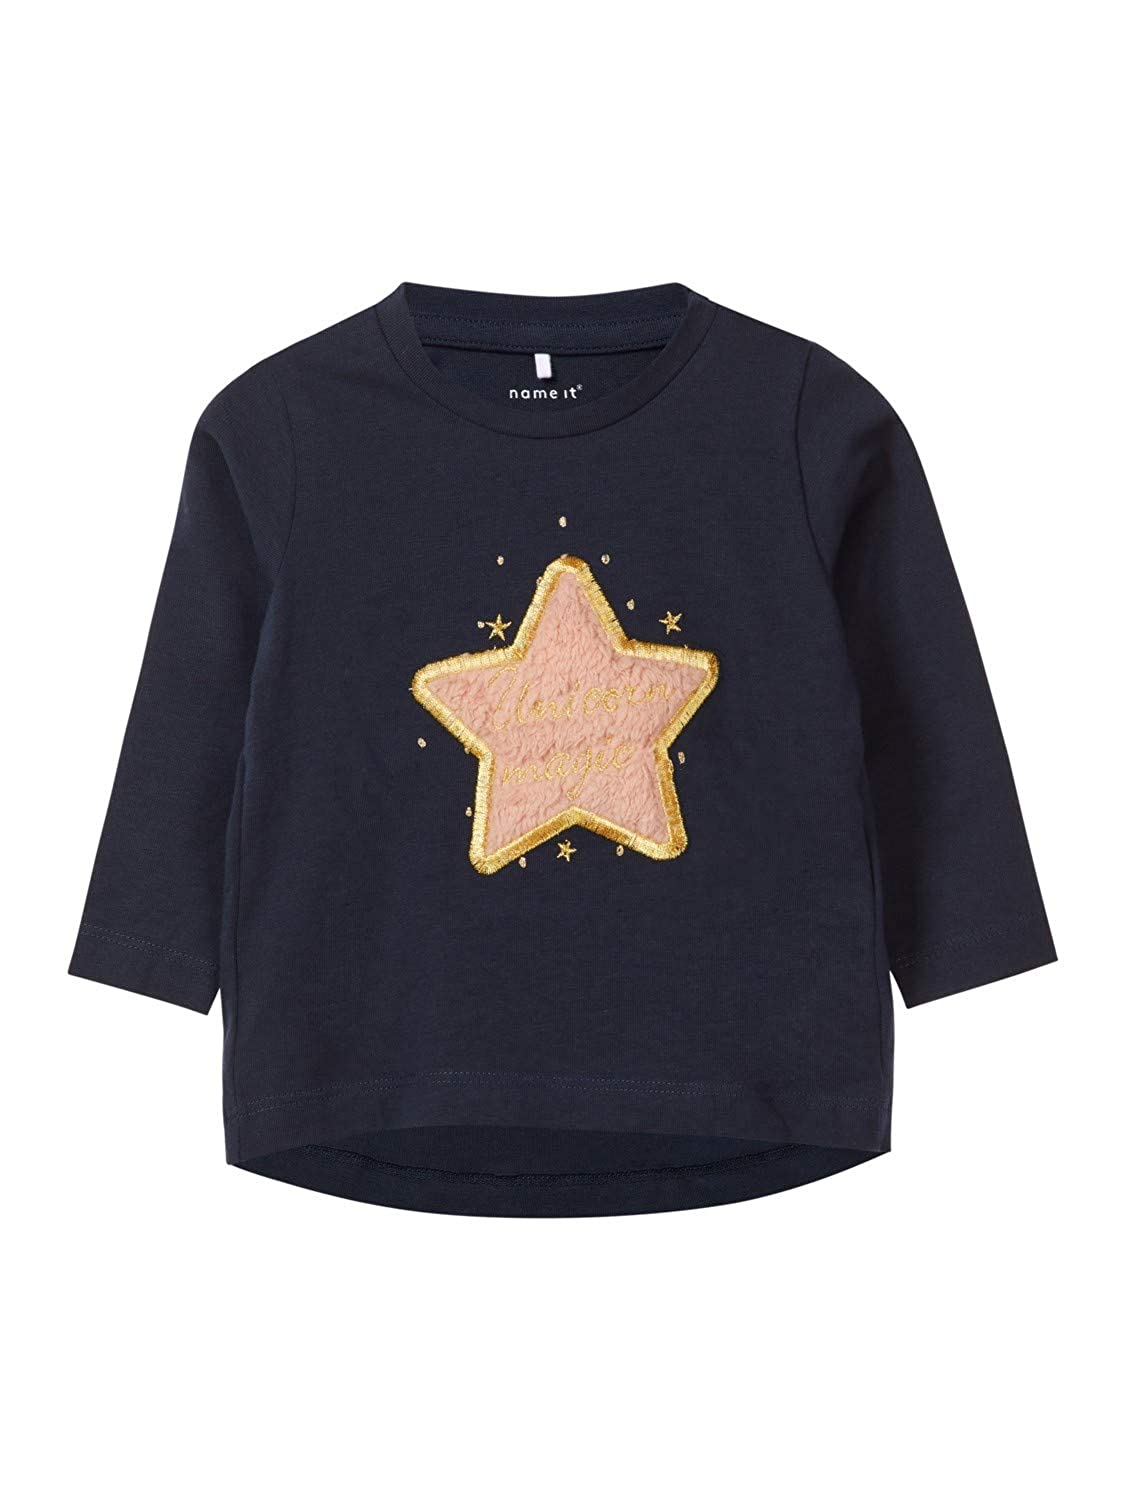 Name It Baby Girls' Nbfreal Ls Long Sleeve Top 13159478